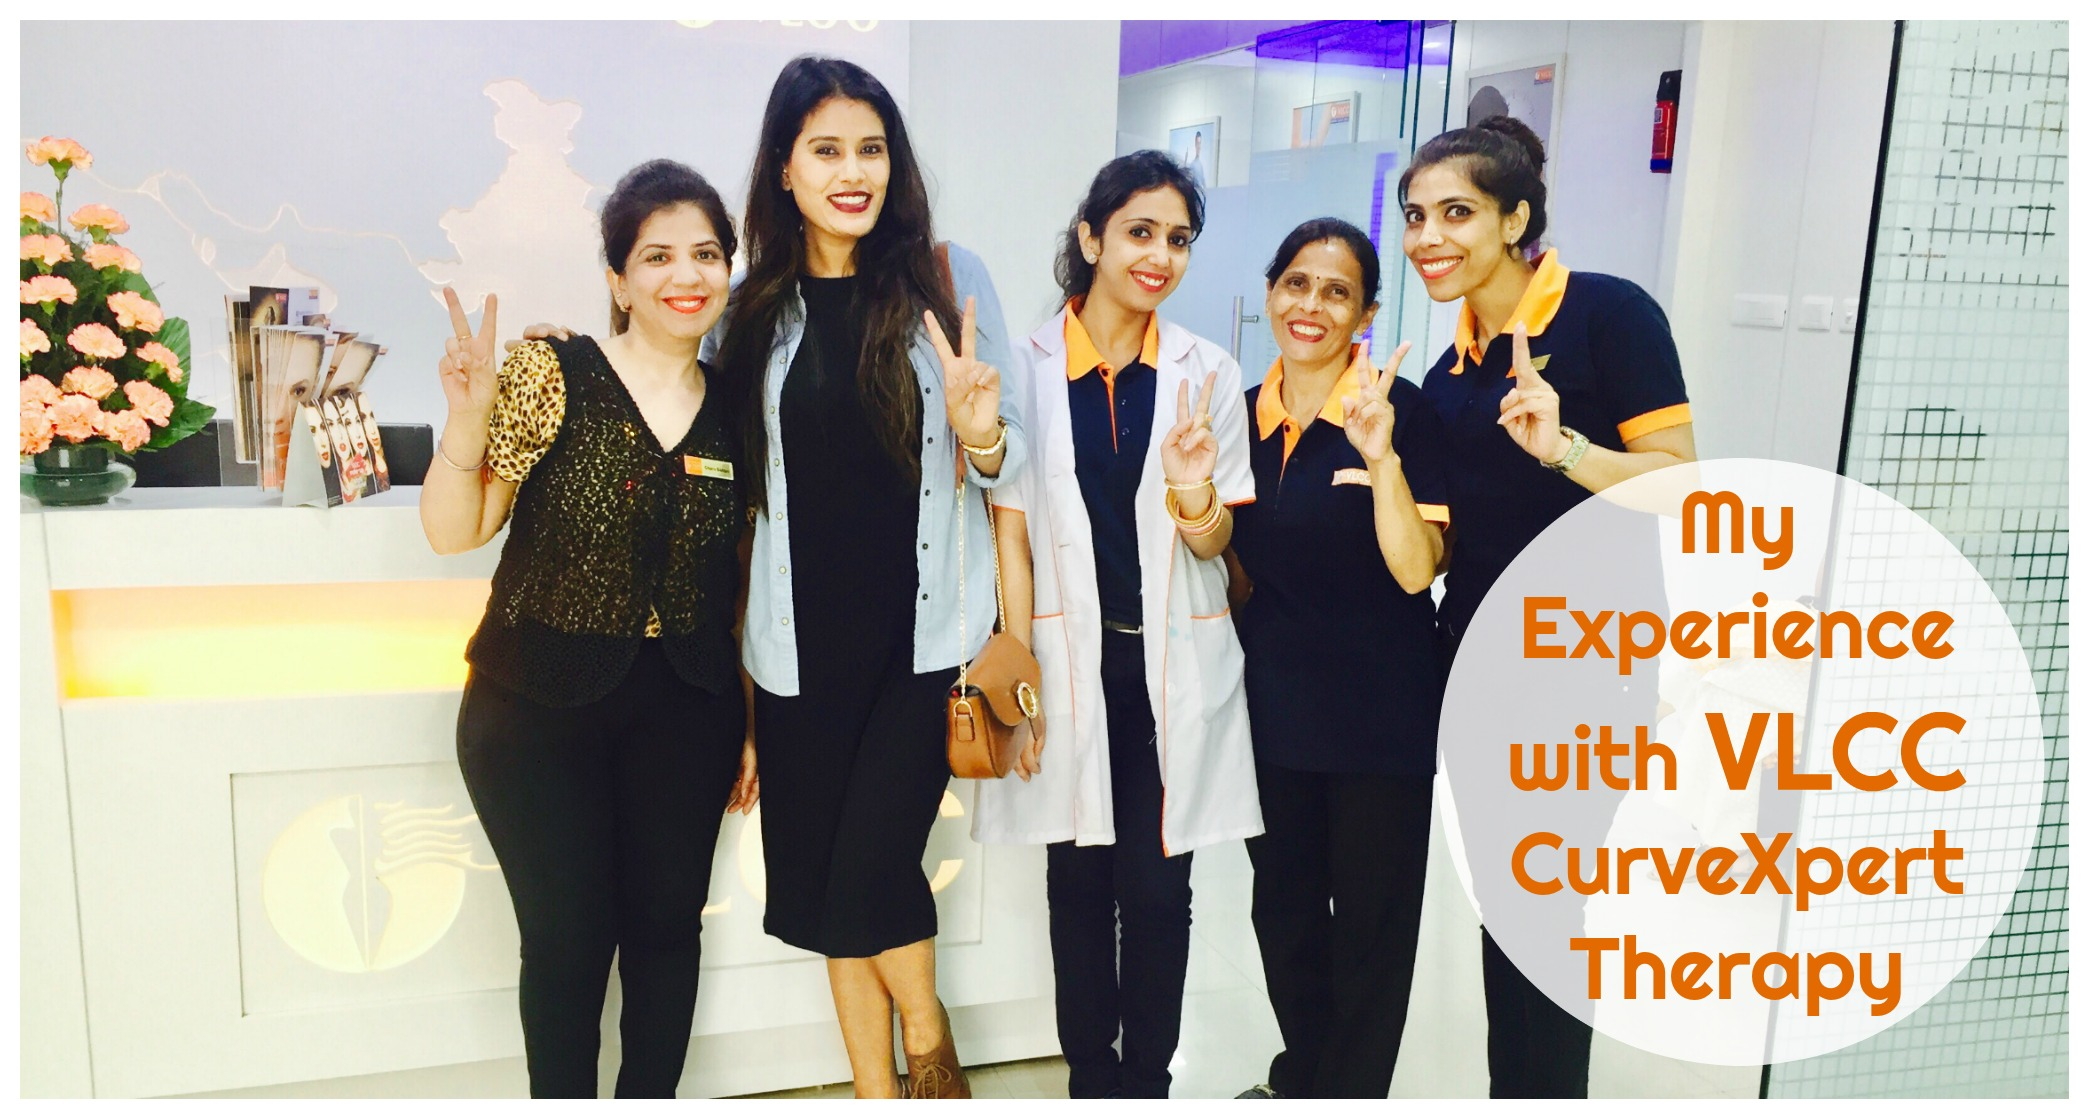 My Experience With Vlcc Curvexpert Therapy Makeup And Body Blog